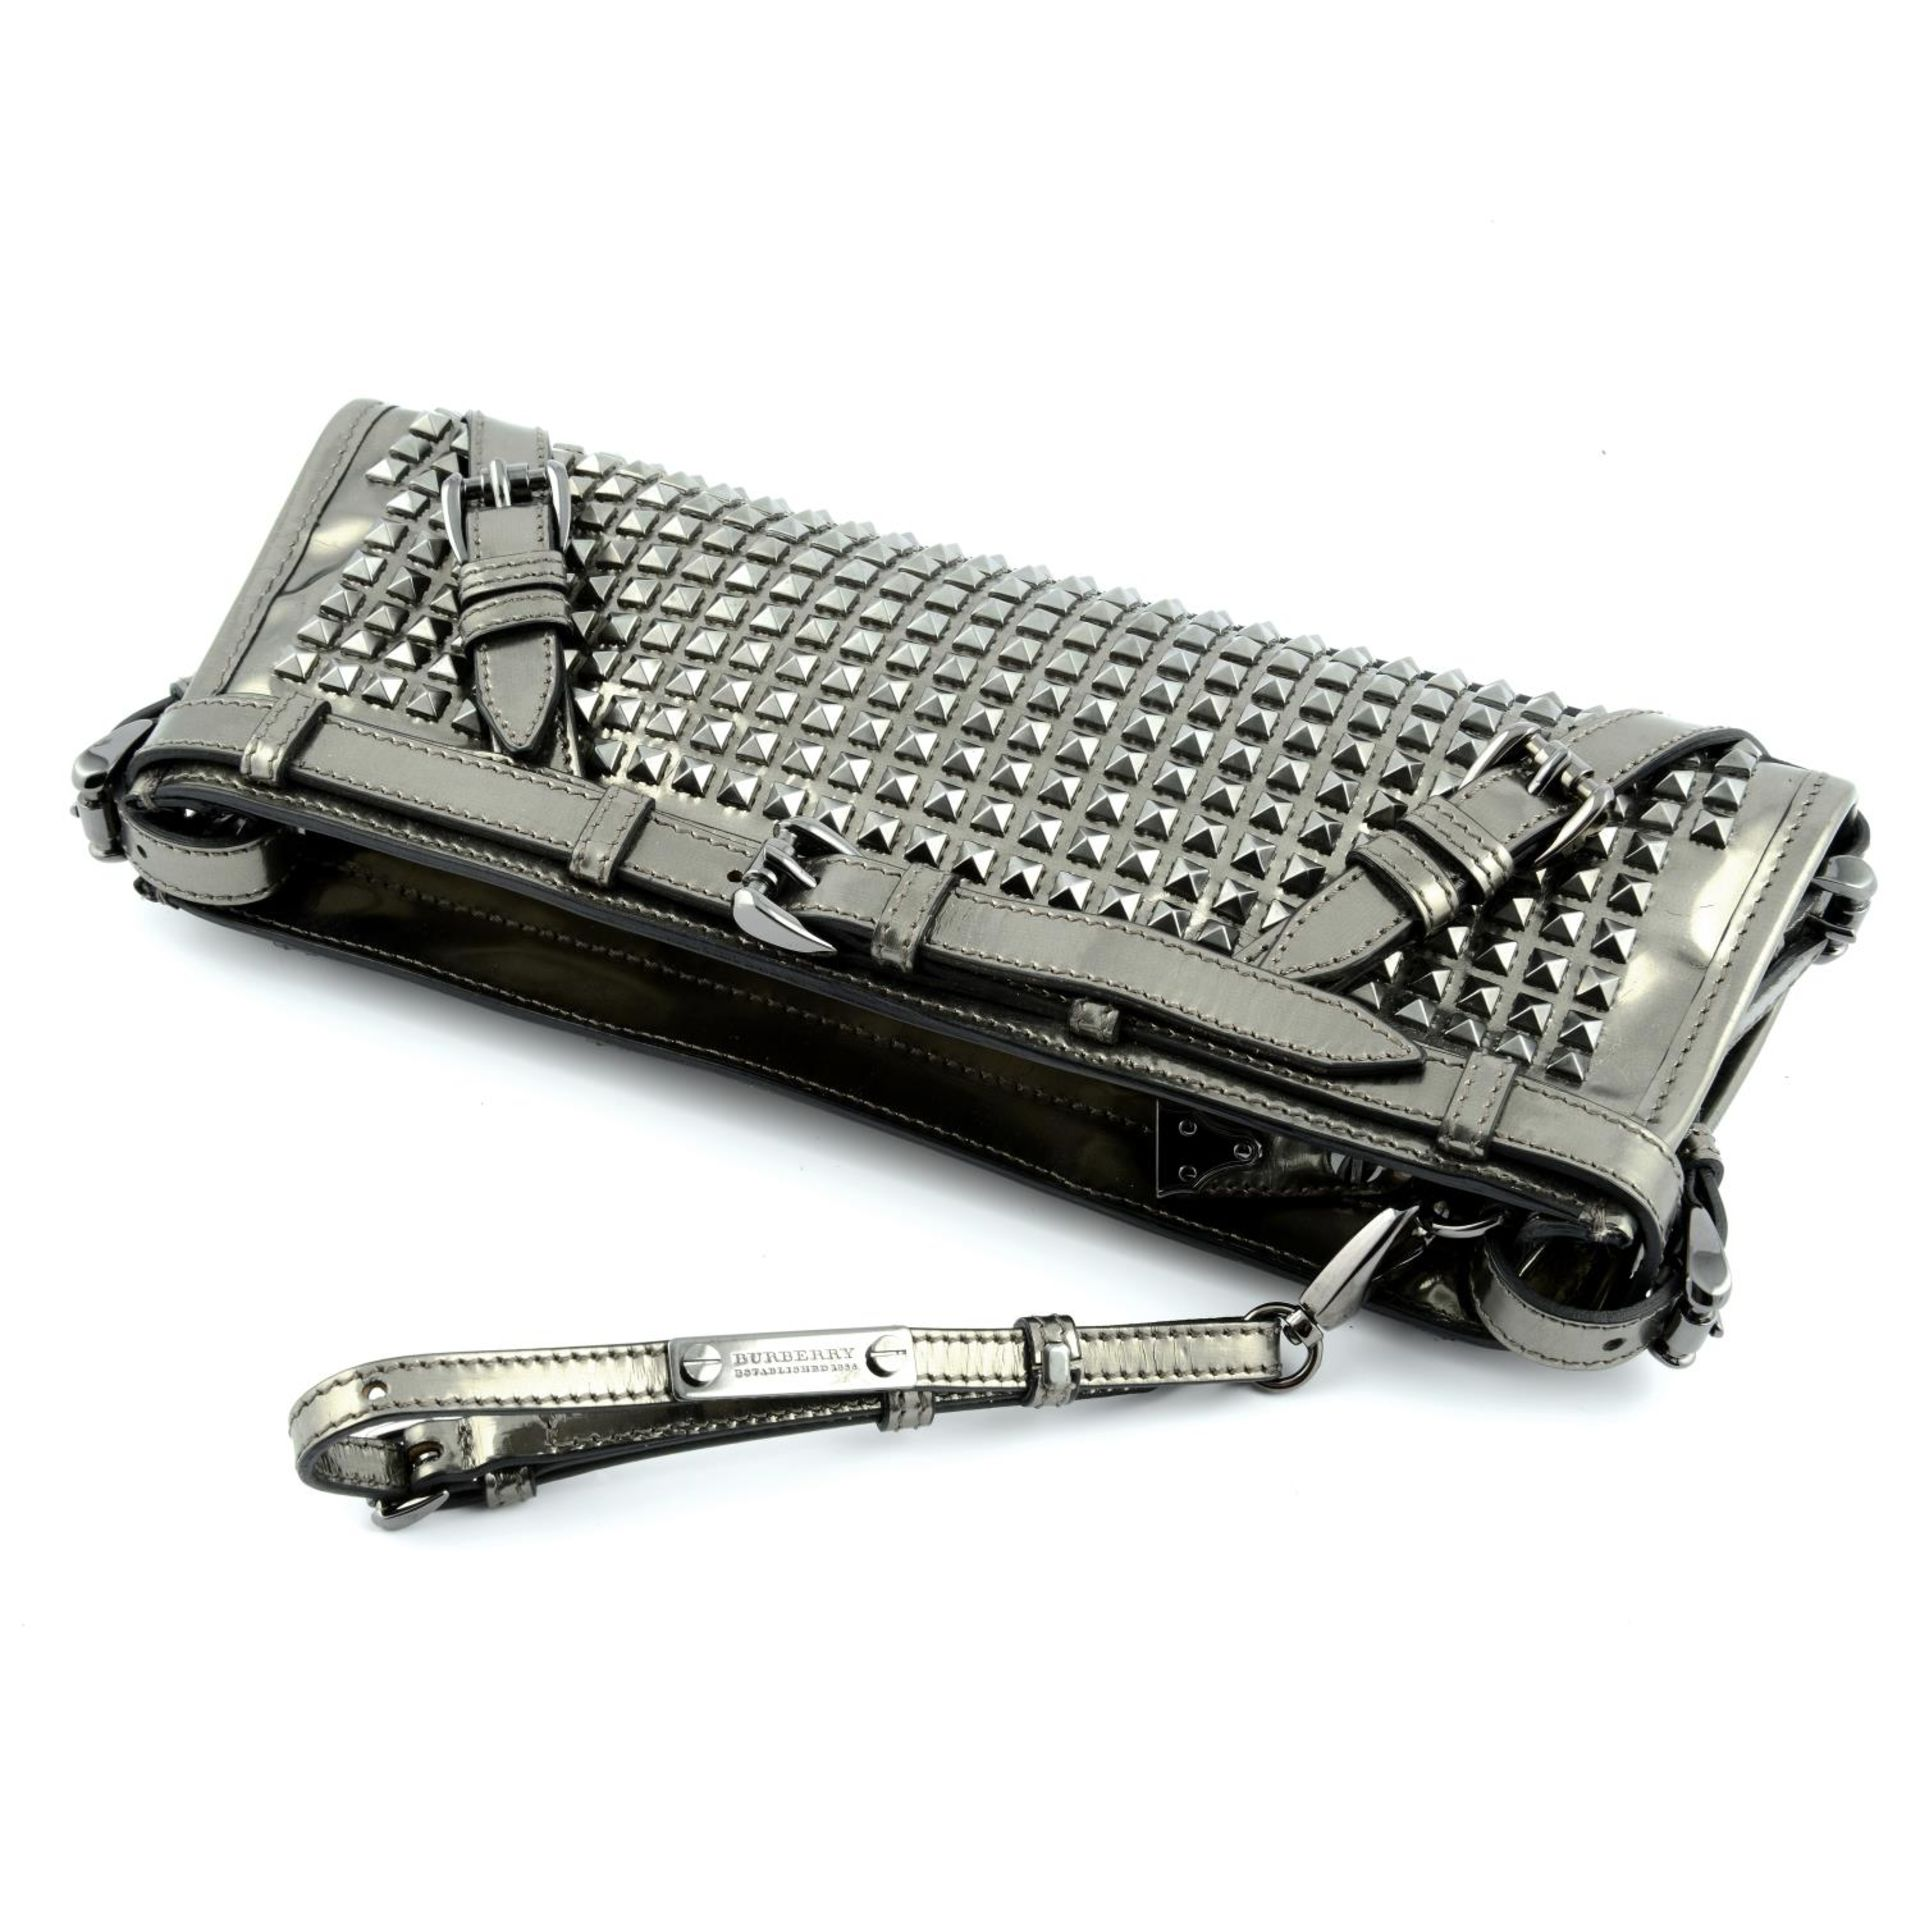 BURBERRY - a Hyde studded clutch. - Image 5 of 5